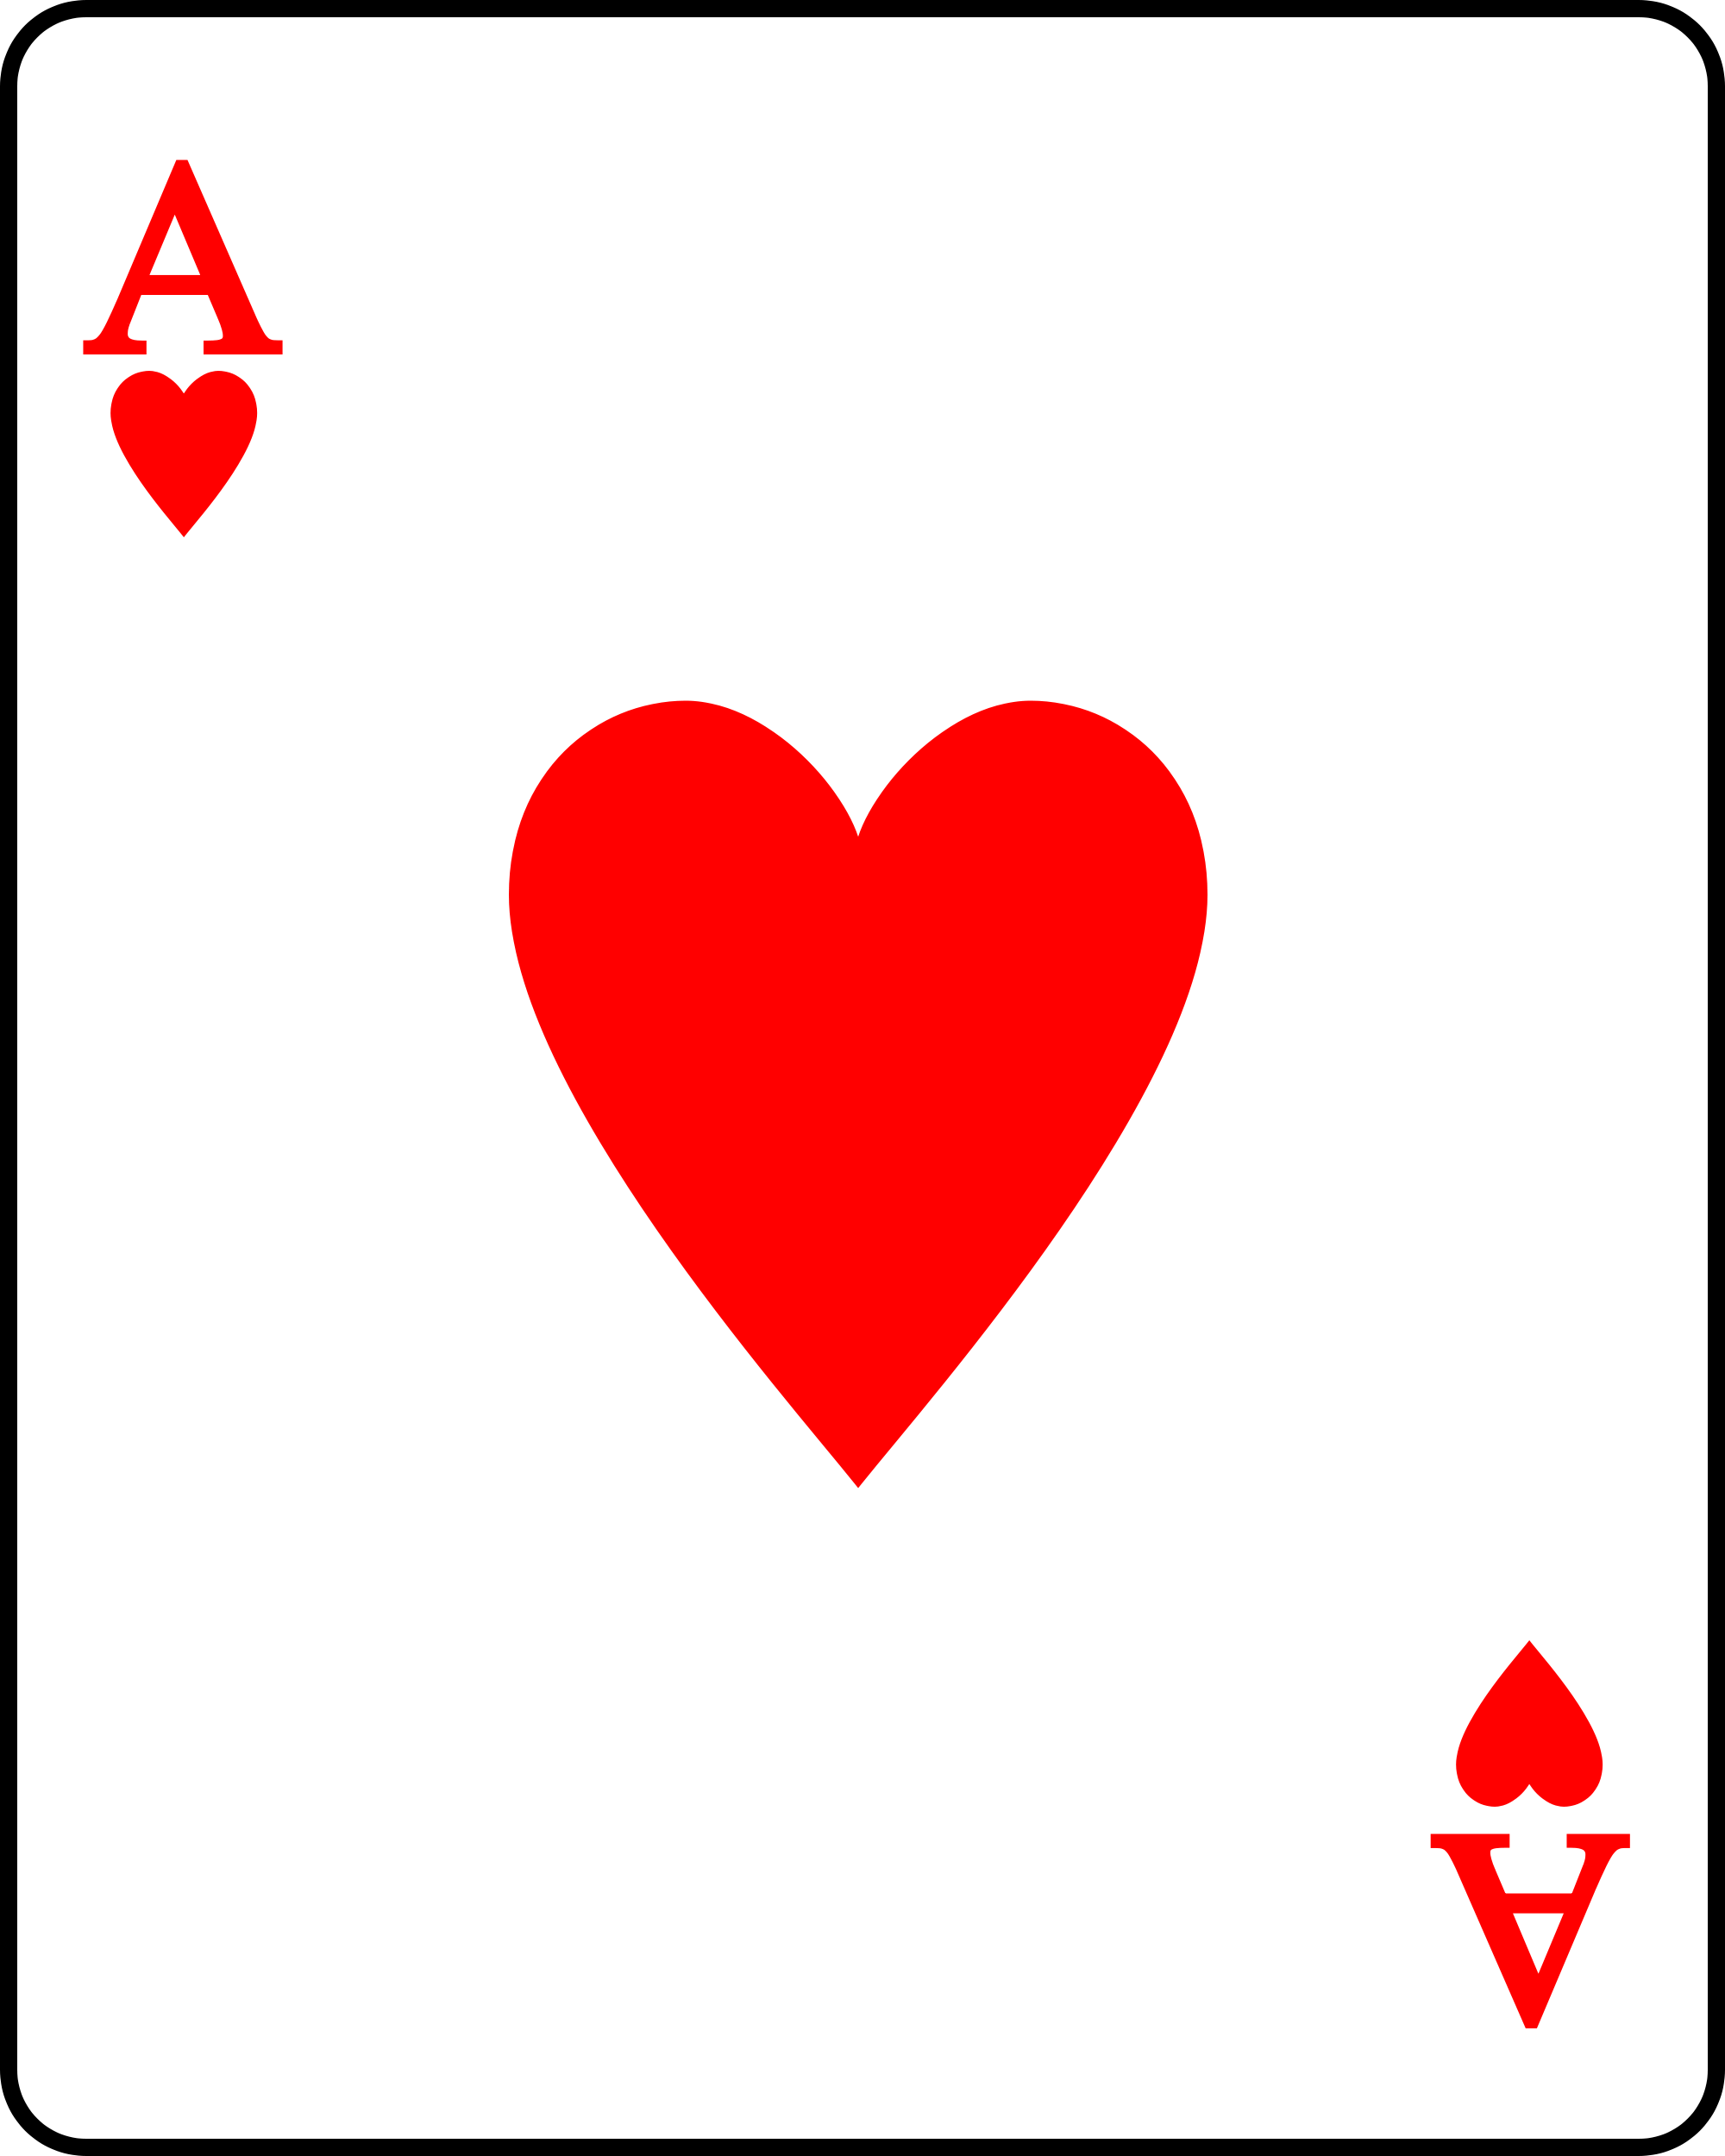 Hearts clipart card. Free heart playing cards